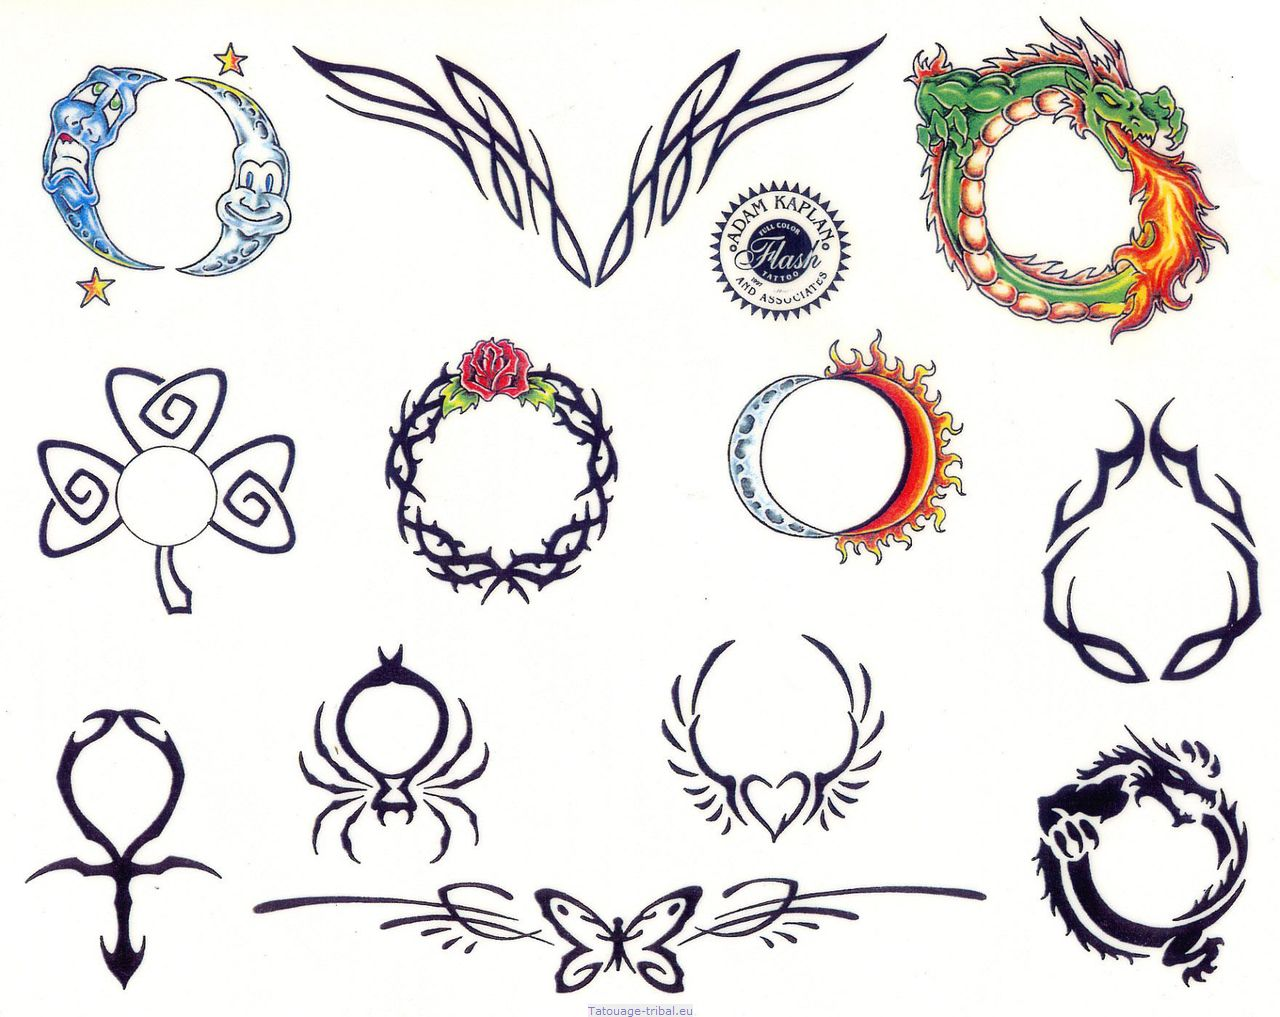 Tatouages cercle tatouages 31 tatouage cercle - Tatouage cercle signification ...